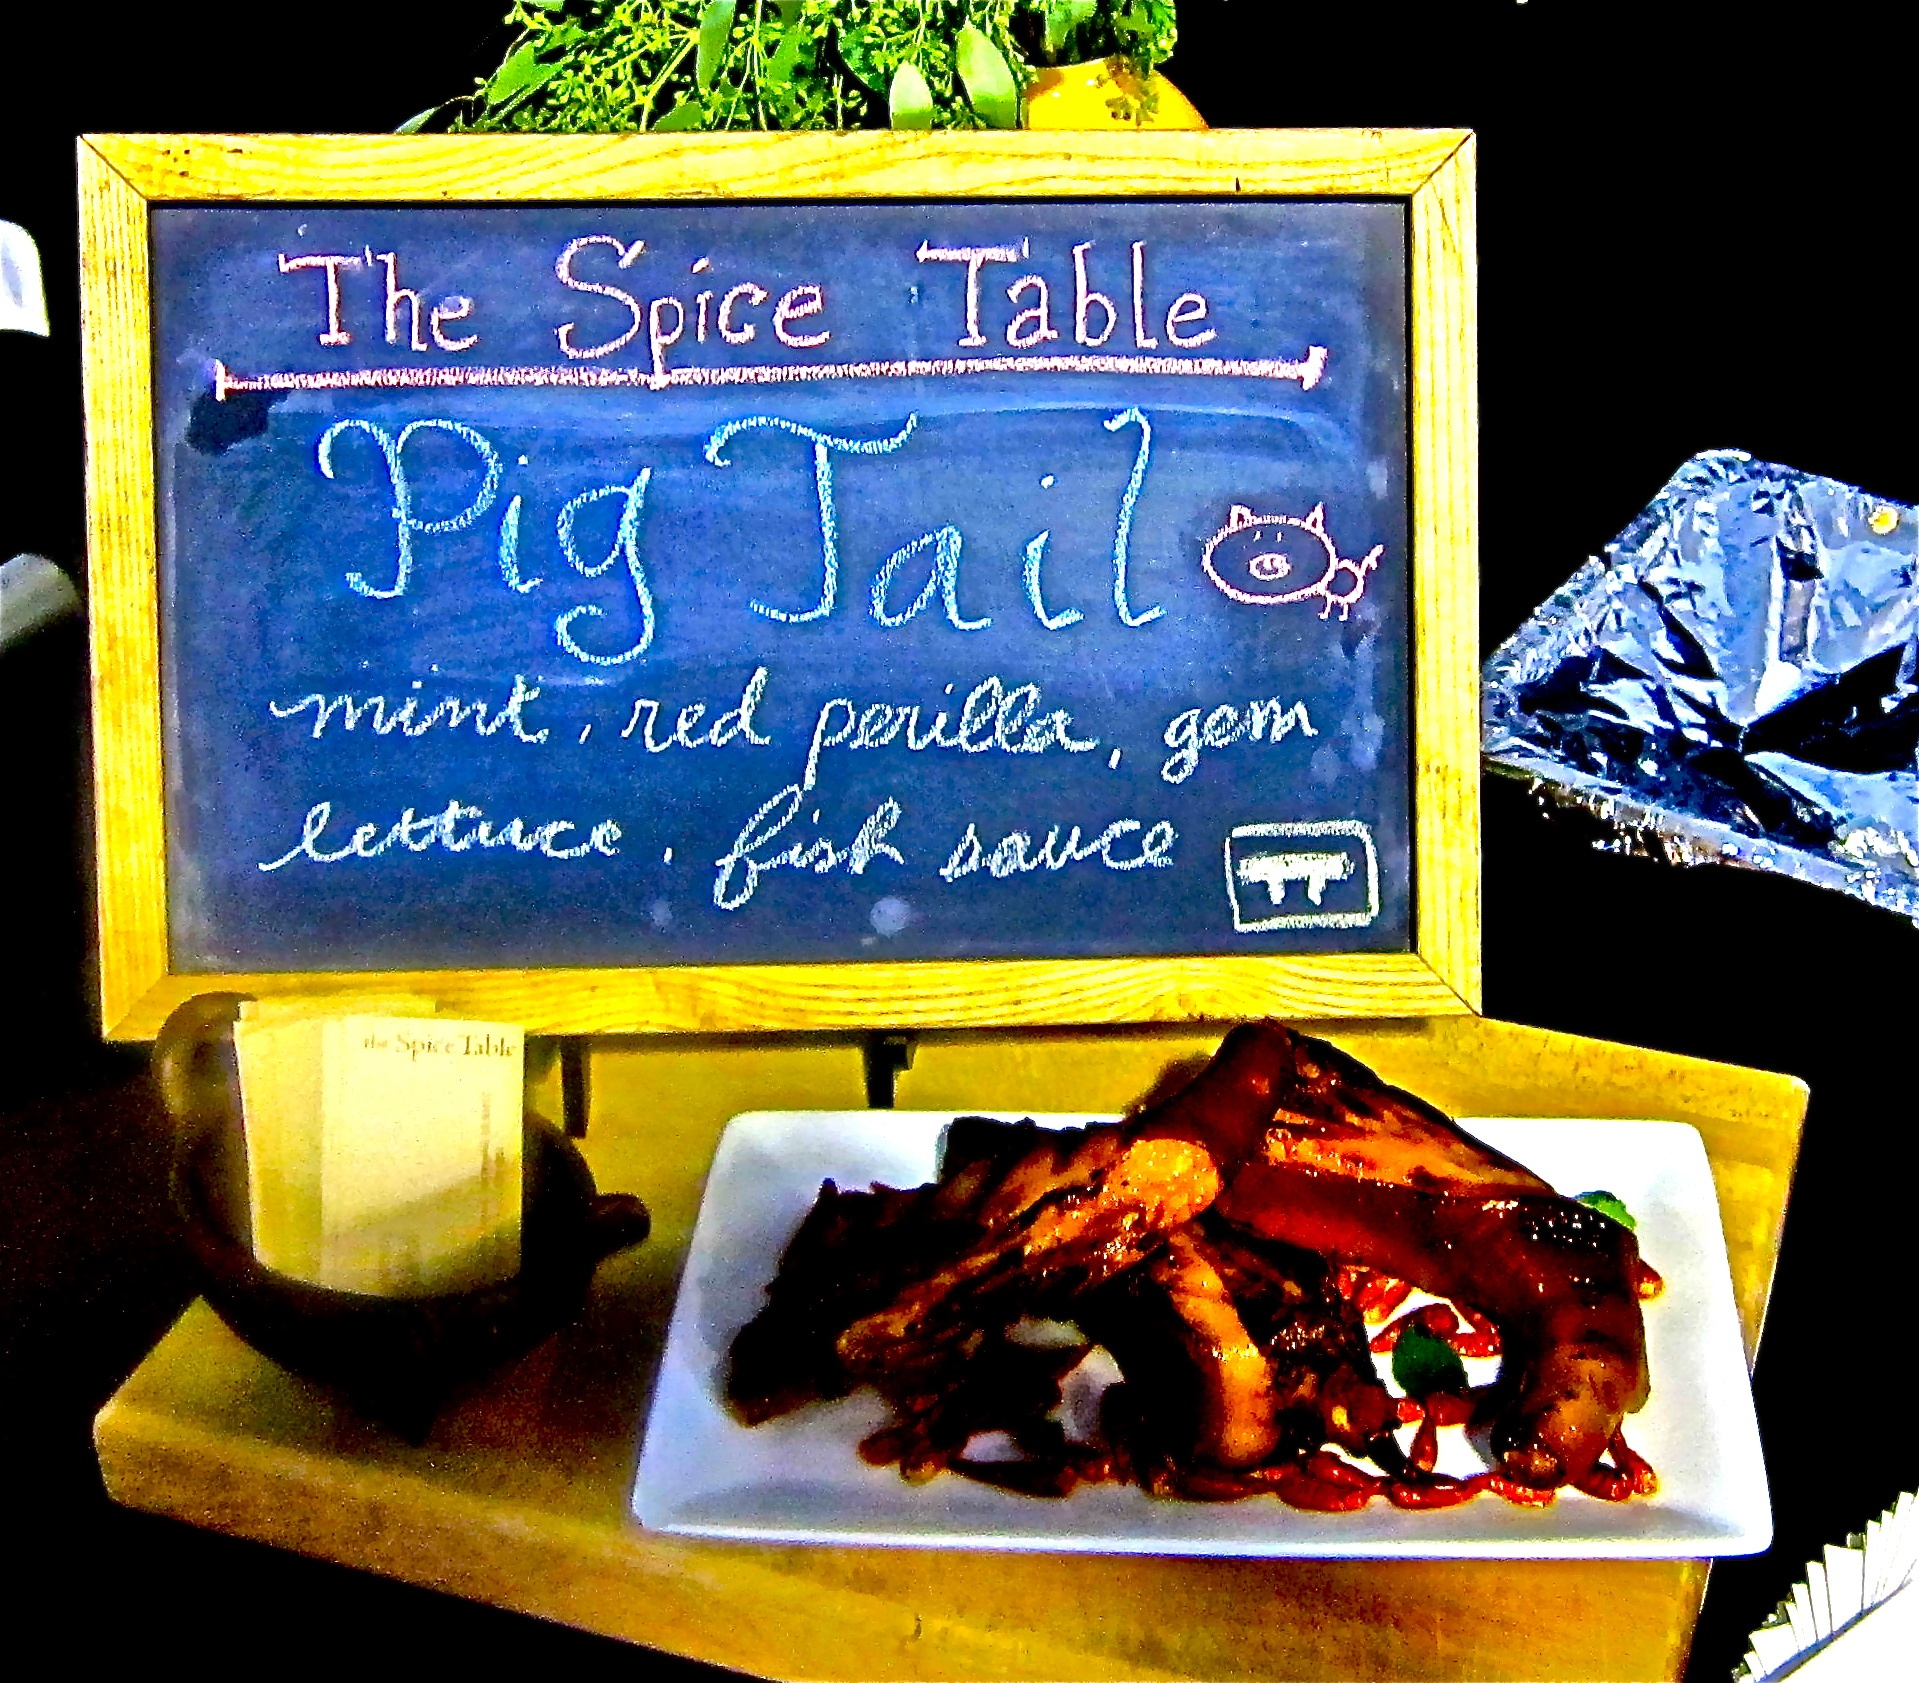 pig tail anyone? Yes, from The Spice Table